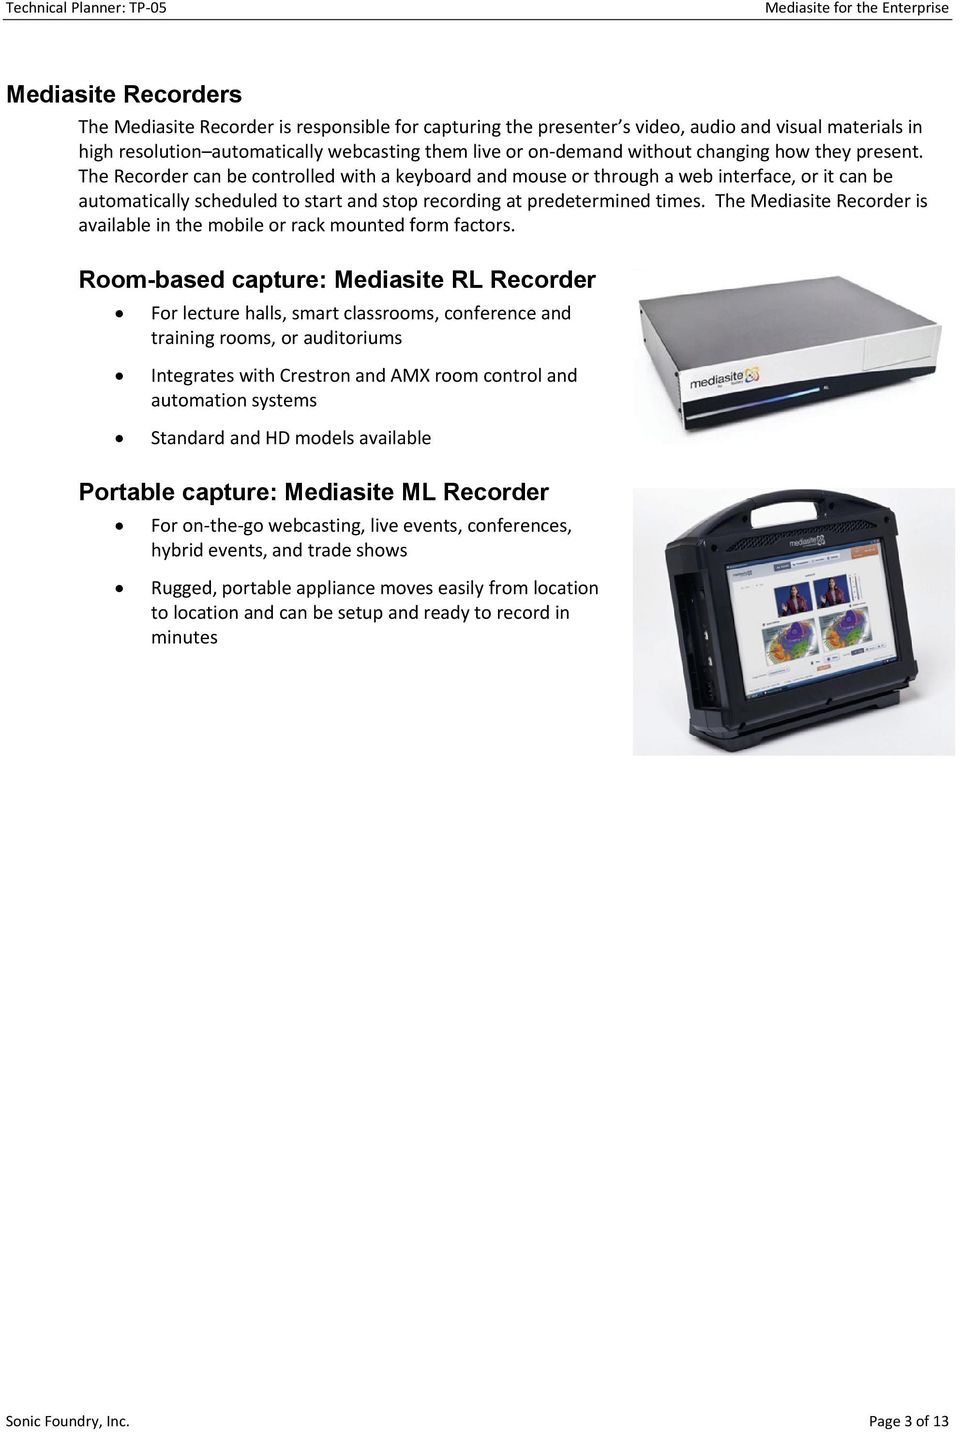 The Mediasite Recorder is available in the mobile or rack mounted form factors.